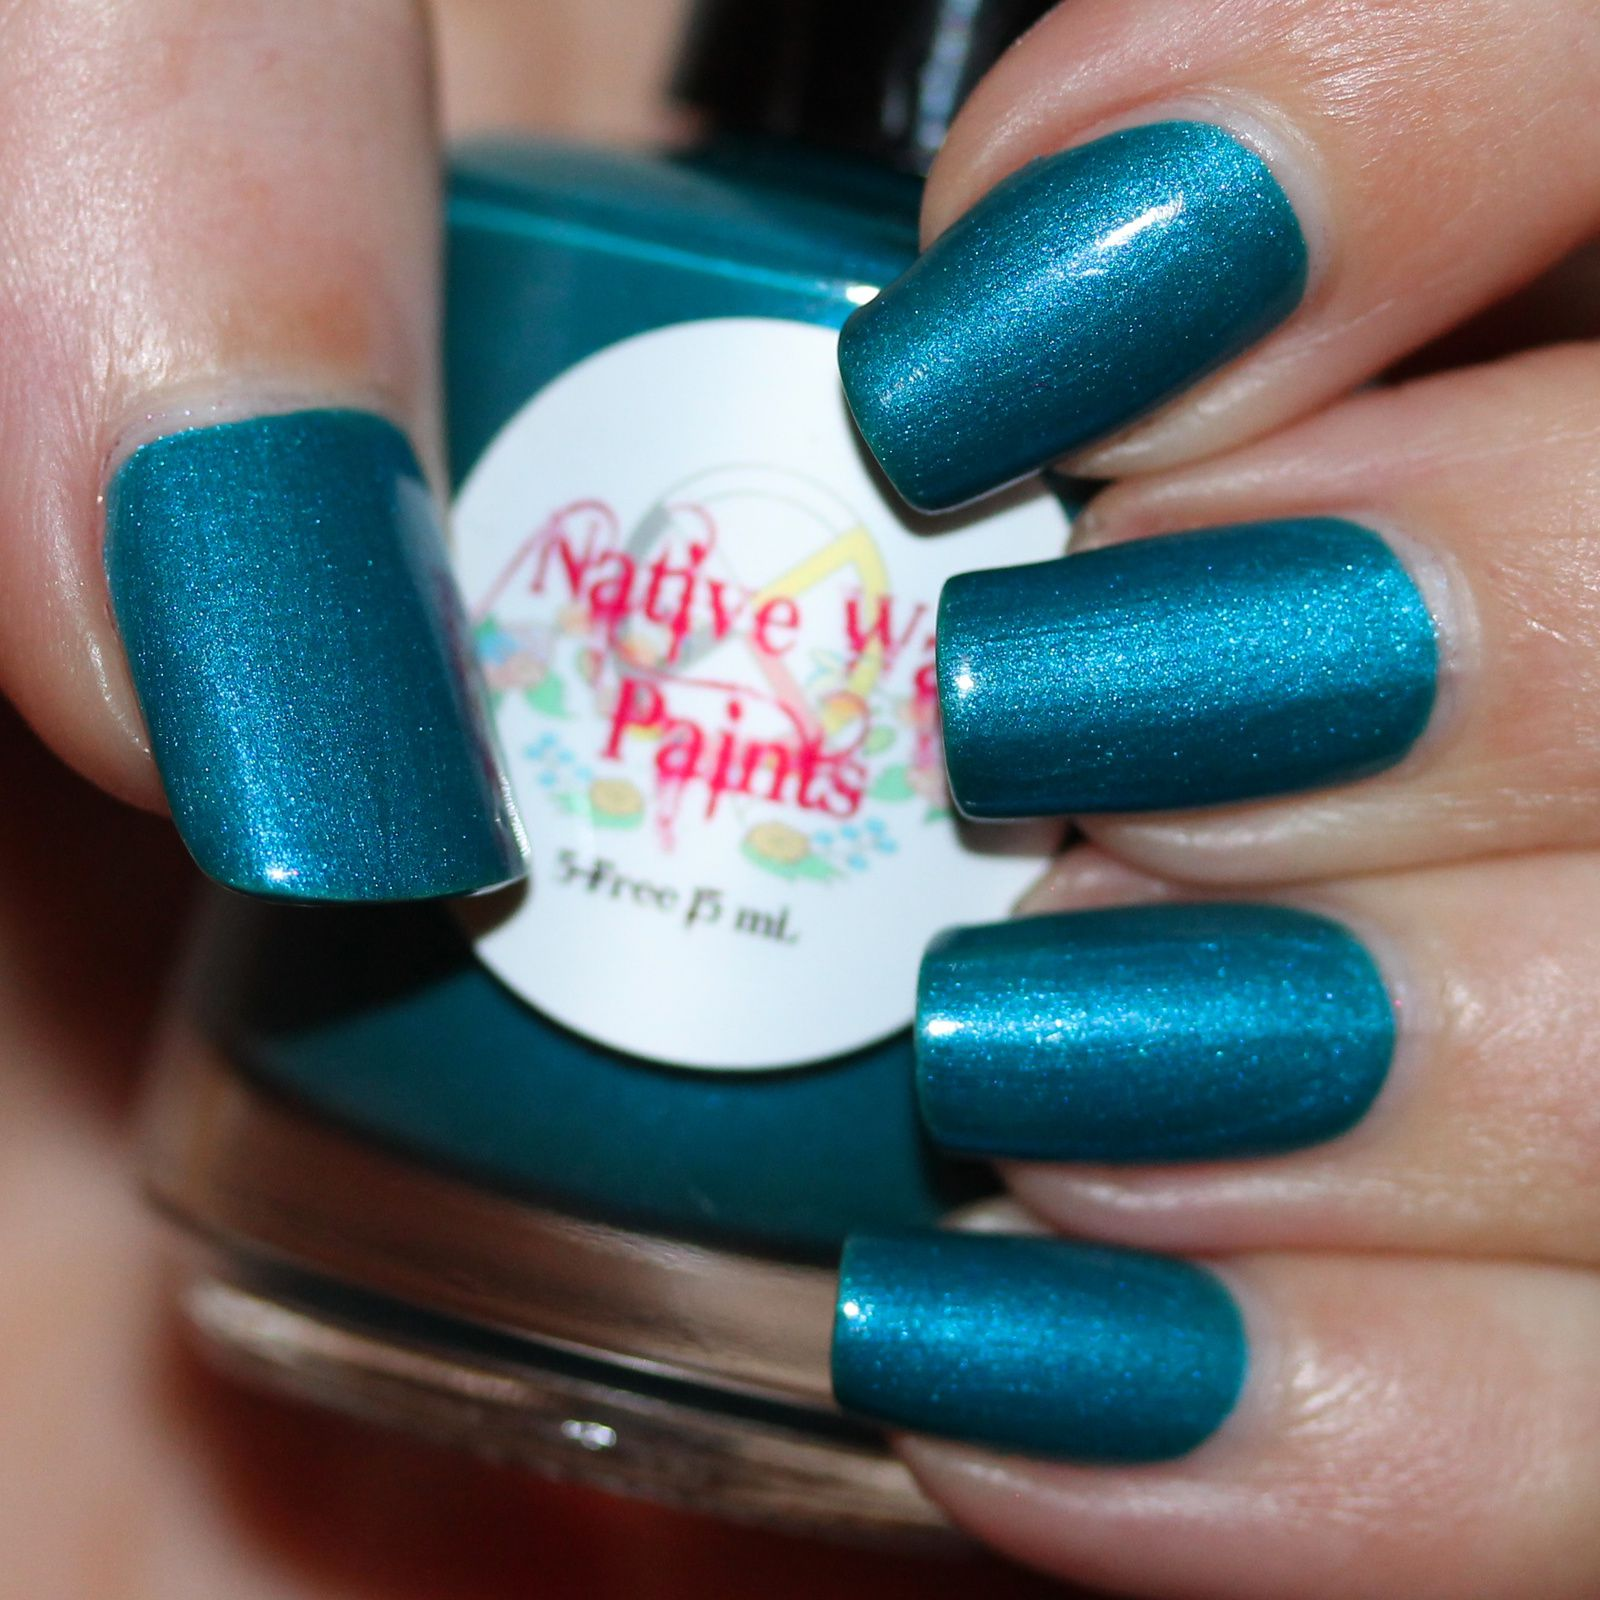 Duri Rejuvacote / Native War Paints My Favorite Sweater and Jeans / Sally Hansen Miracle Gel Top Coat